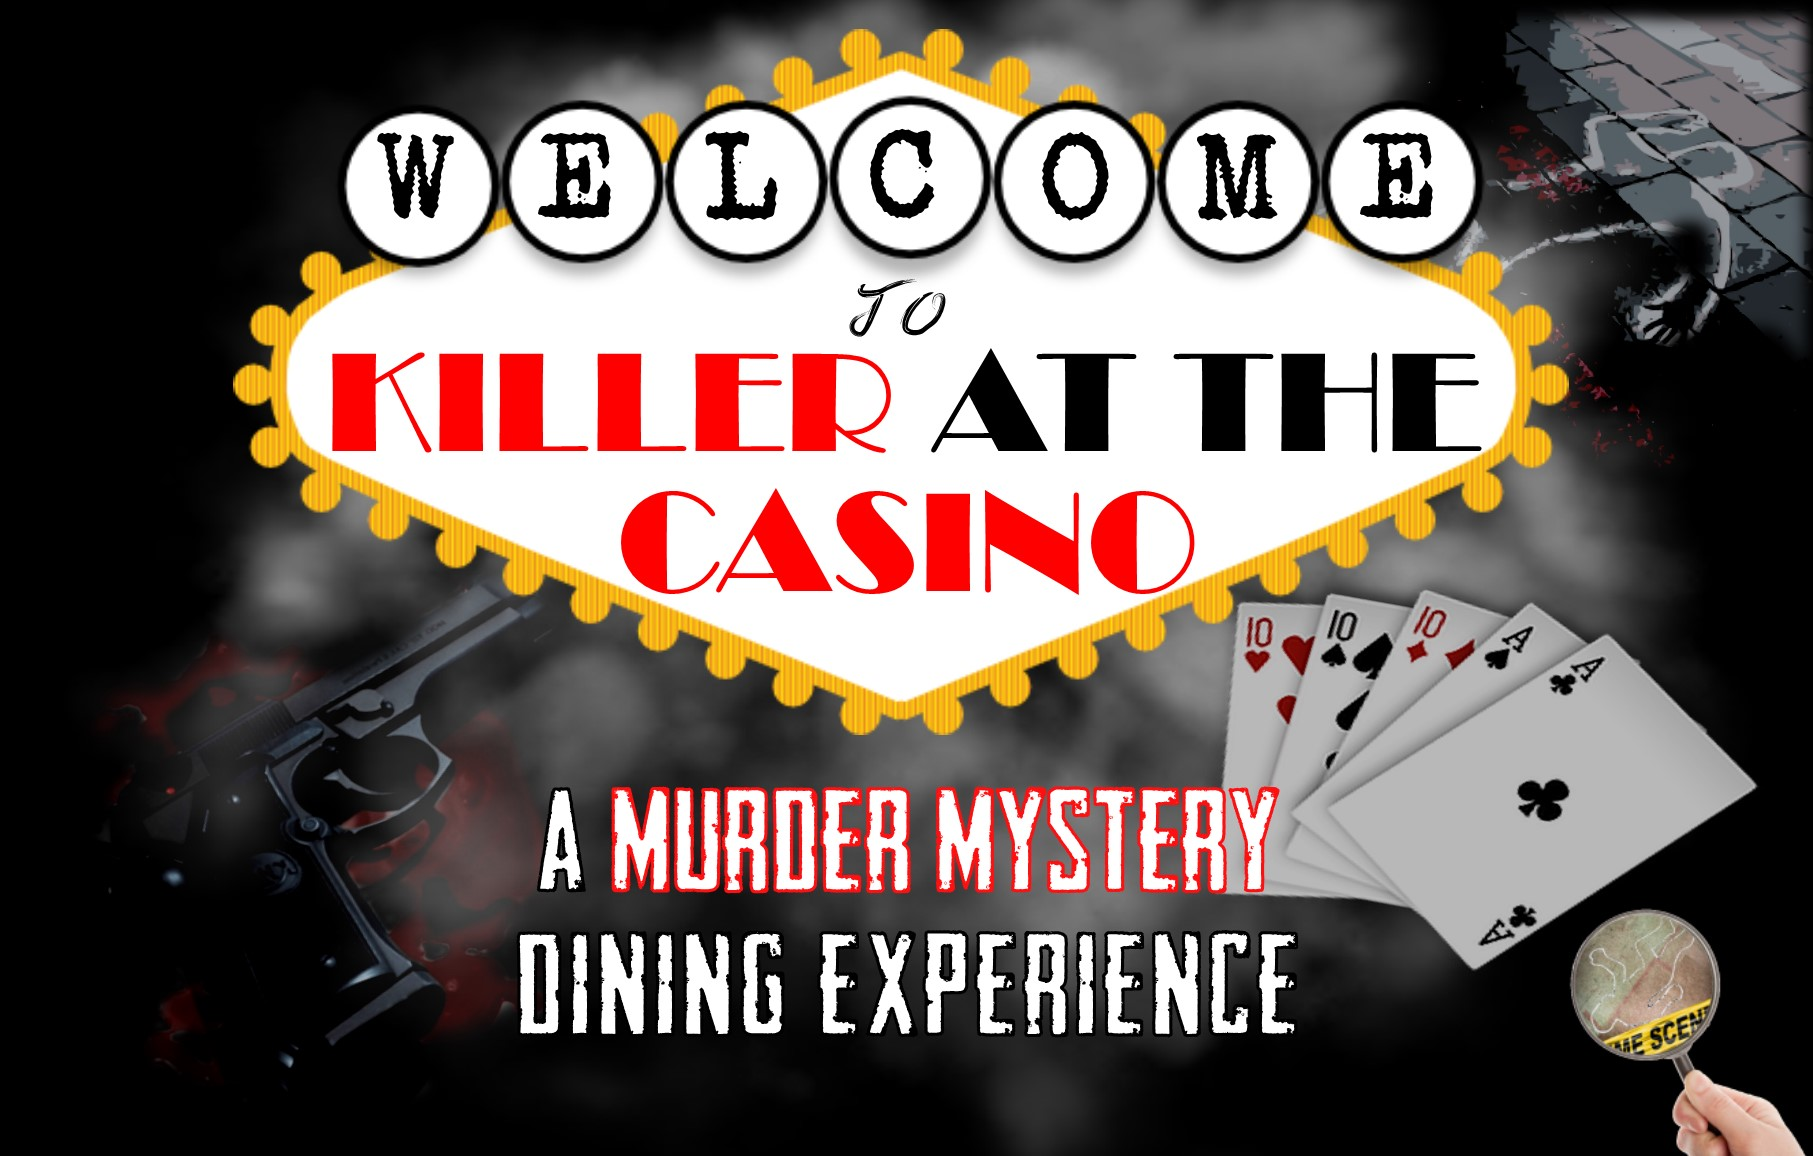 Killer at the Casino